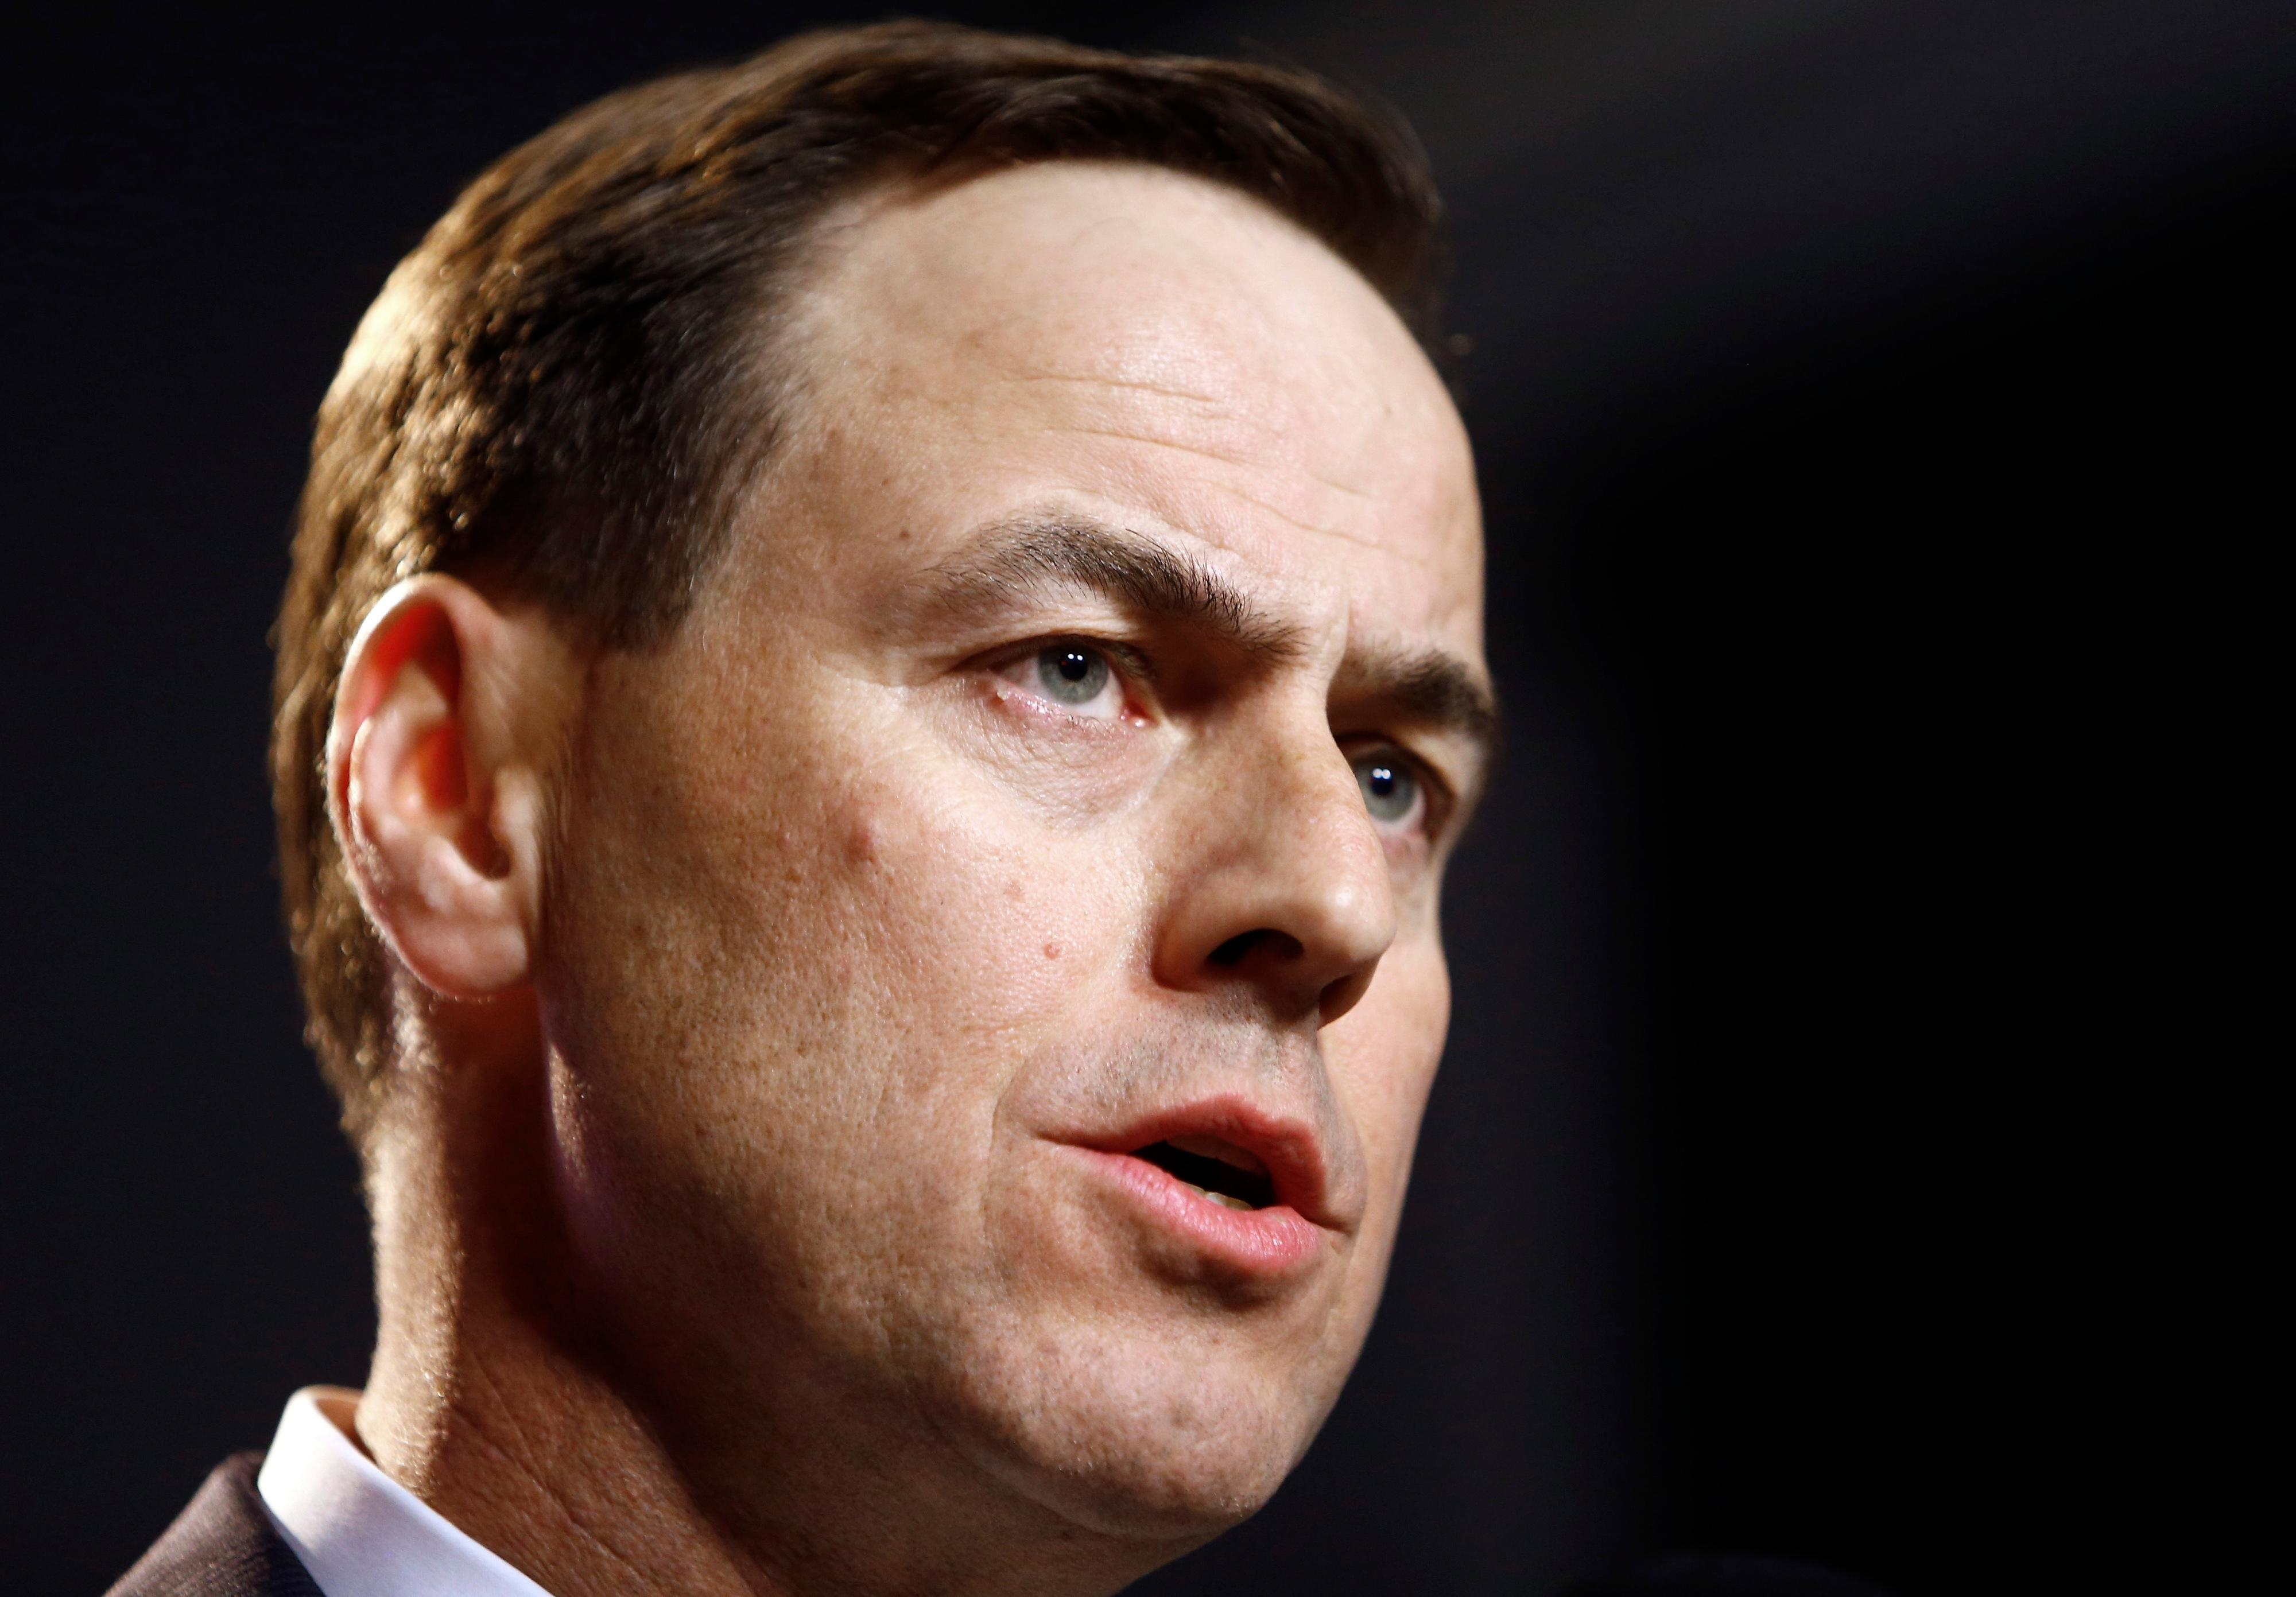 FILE - In this Nov. 12, 2017, file photo, University of Tennessee Athletic Director, John Currie speaks during a press conference announcing the firing of head football coach Butch Jones in Knoxville, Tenn. Currie faces a major challenge finding a candidate to replace Jones who can unite the fan base and make Tennessee competitive again. (Wade Payne/Knoxville News Sentinel via AP, File)